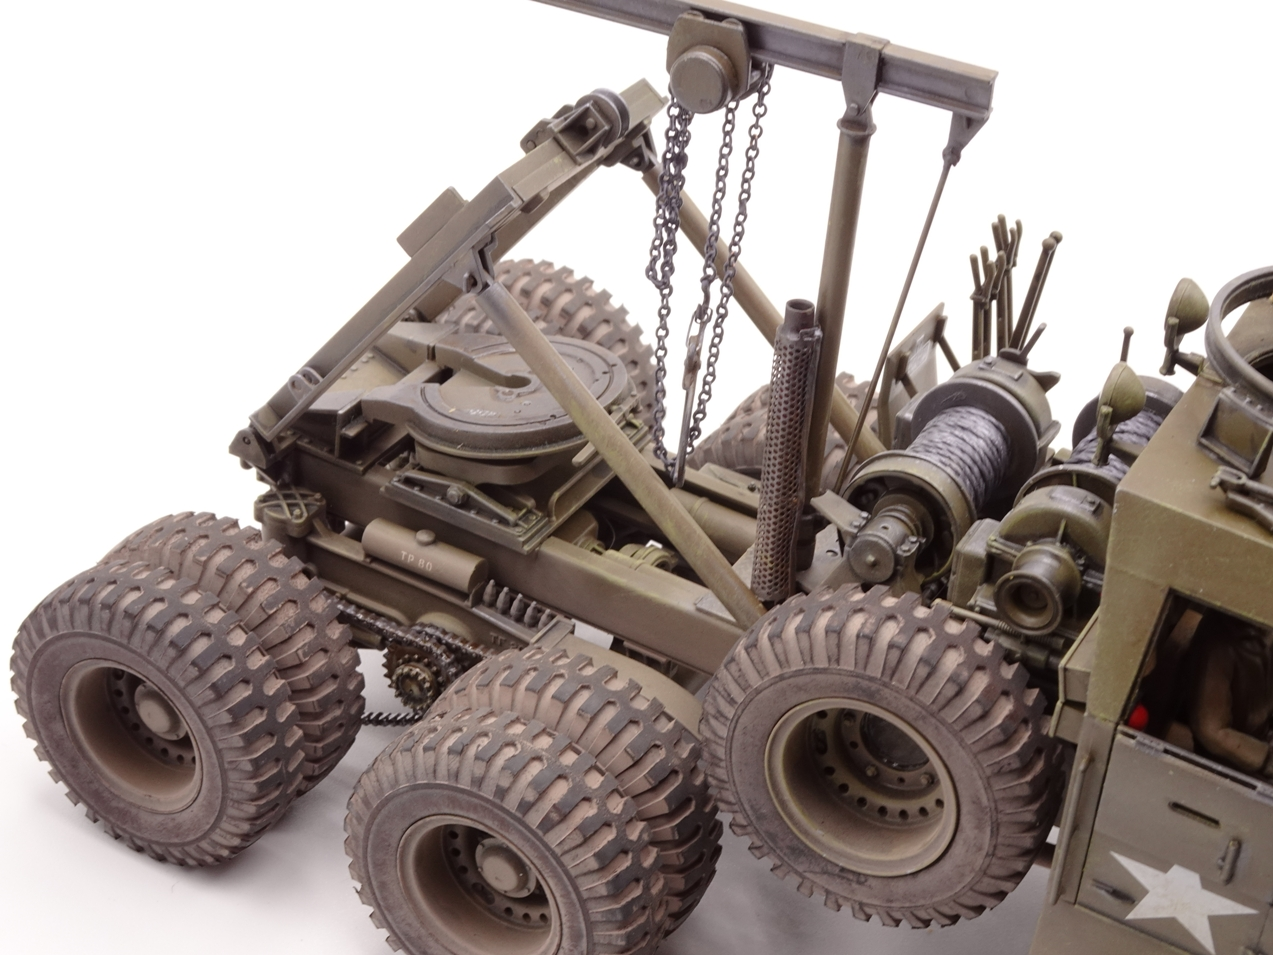 [Tamiya 1/35] M26 Armored tank recovery vehicle réf. 35244 - Page 4 M26-fin-4